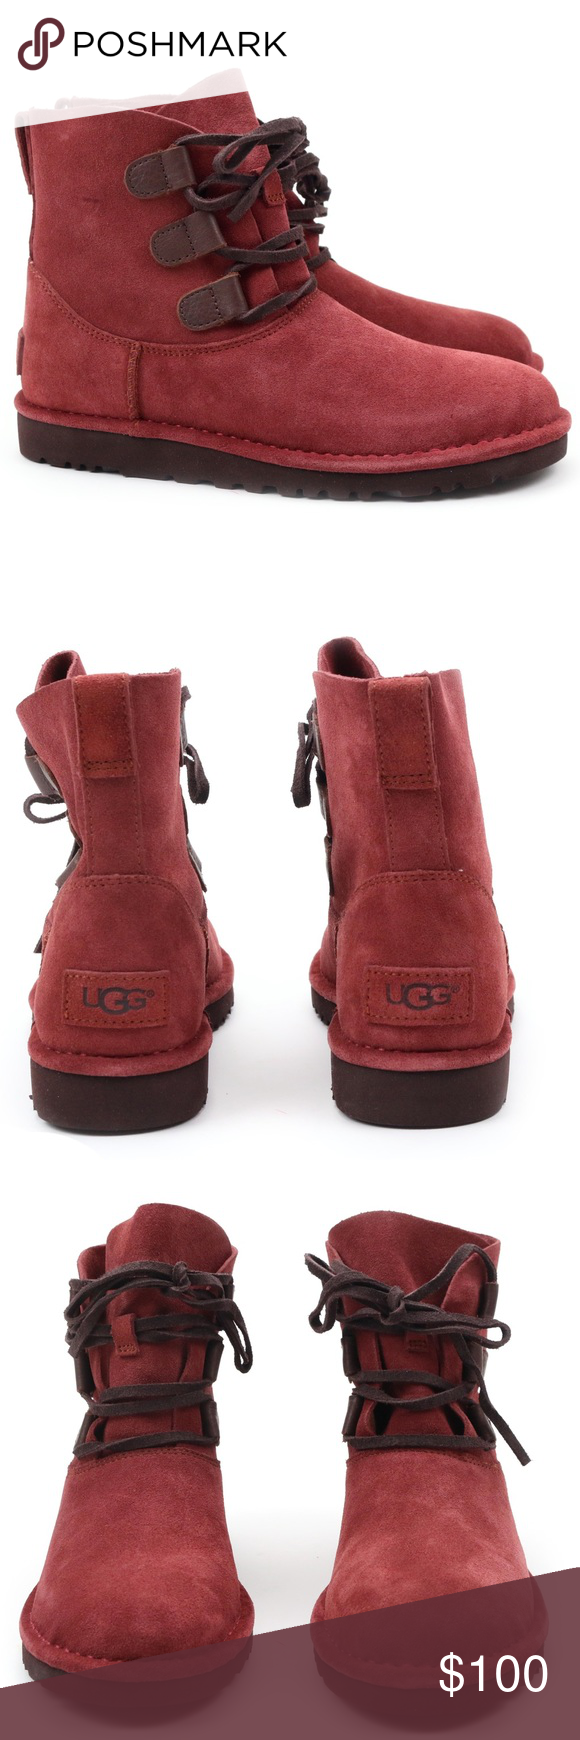 6afd6bbc72c UGG Elvi Red Clay Suede Combat Ankle Boots 🔥 Brand new! These are ...